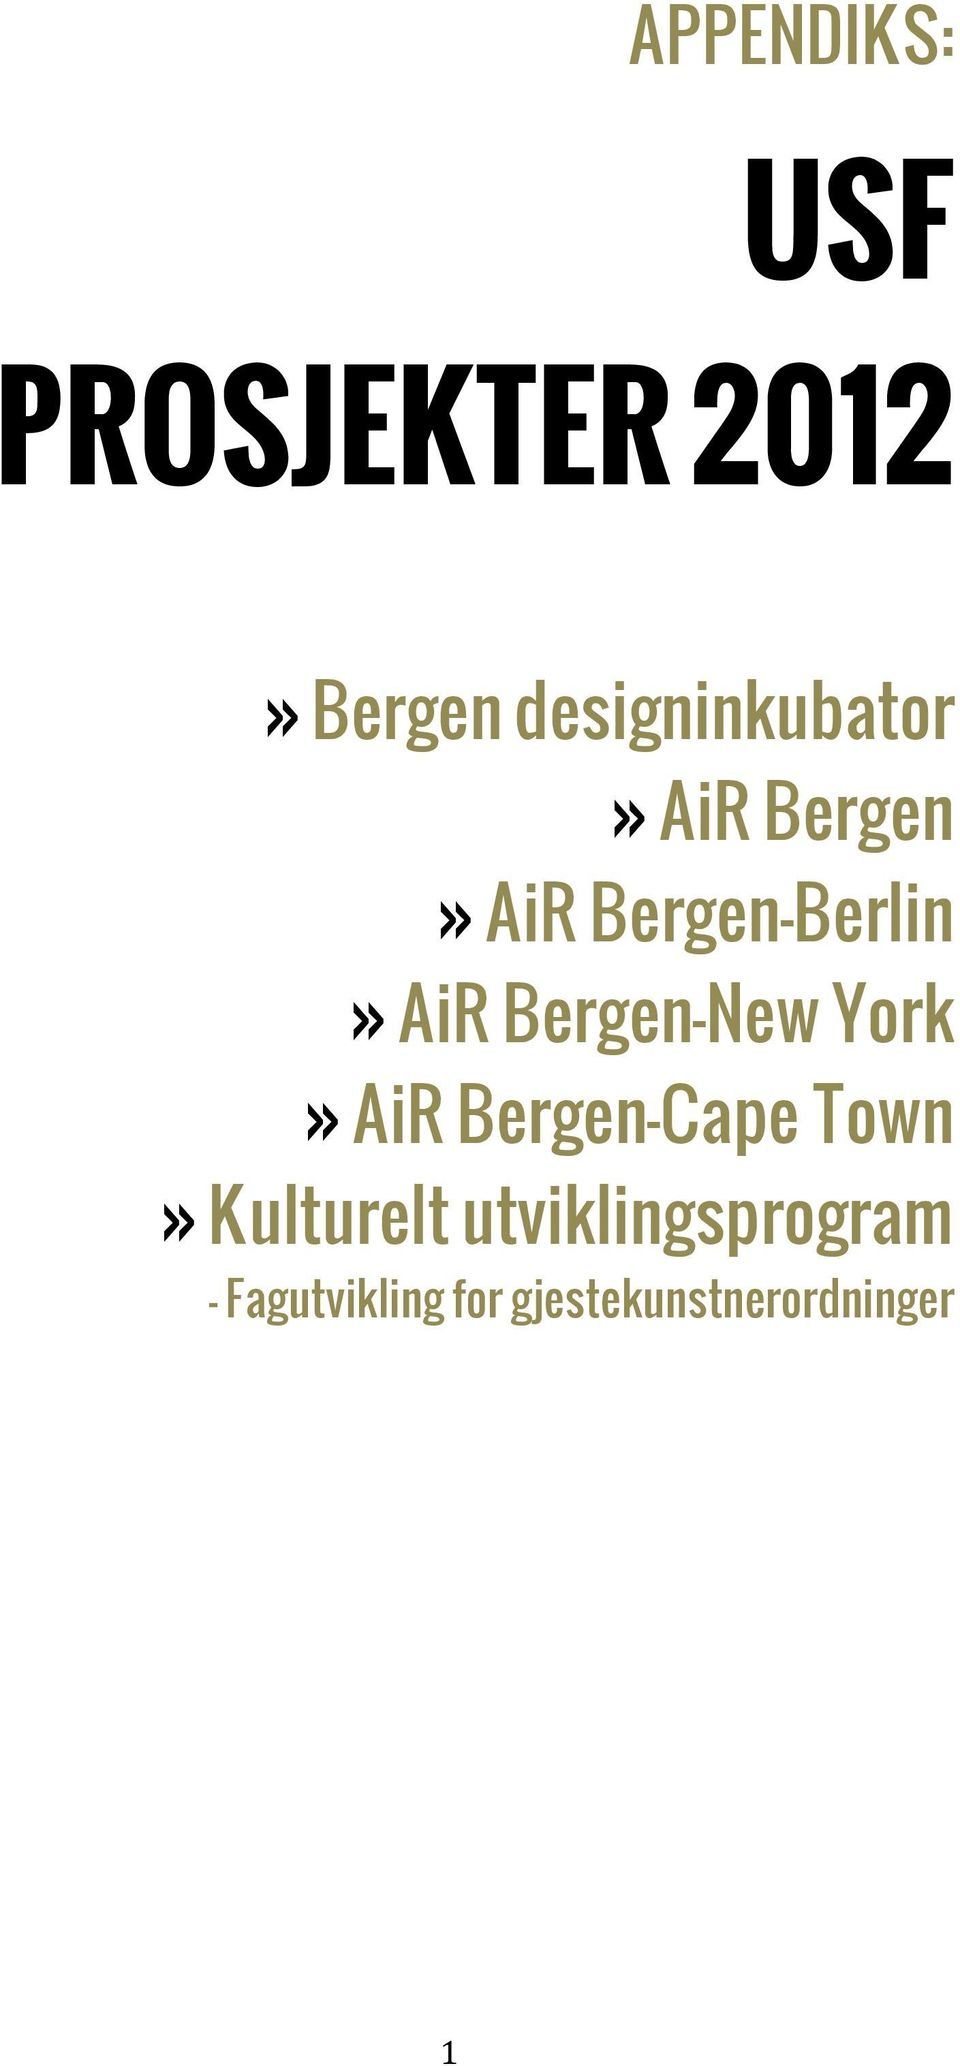 AiR Bergen-New York» AiR Bergen-Cape Town»